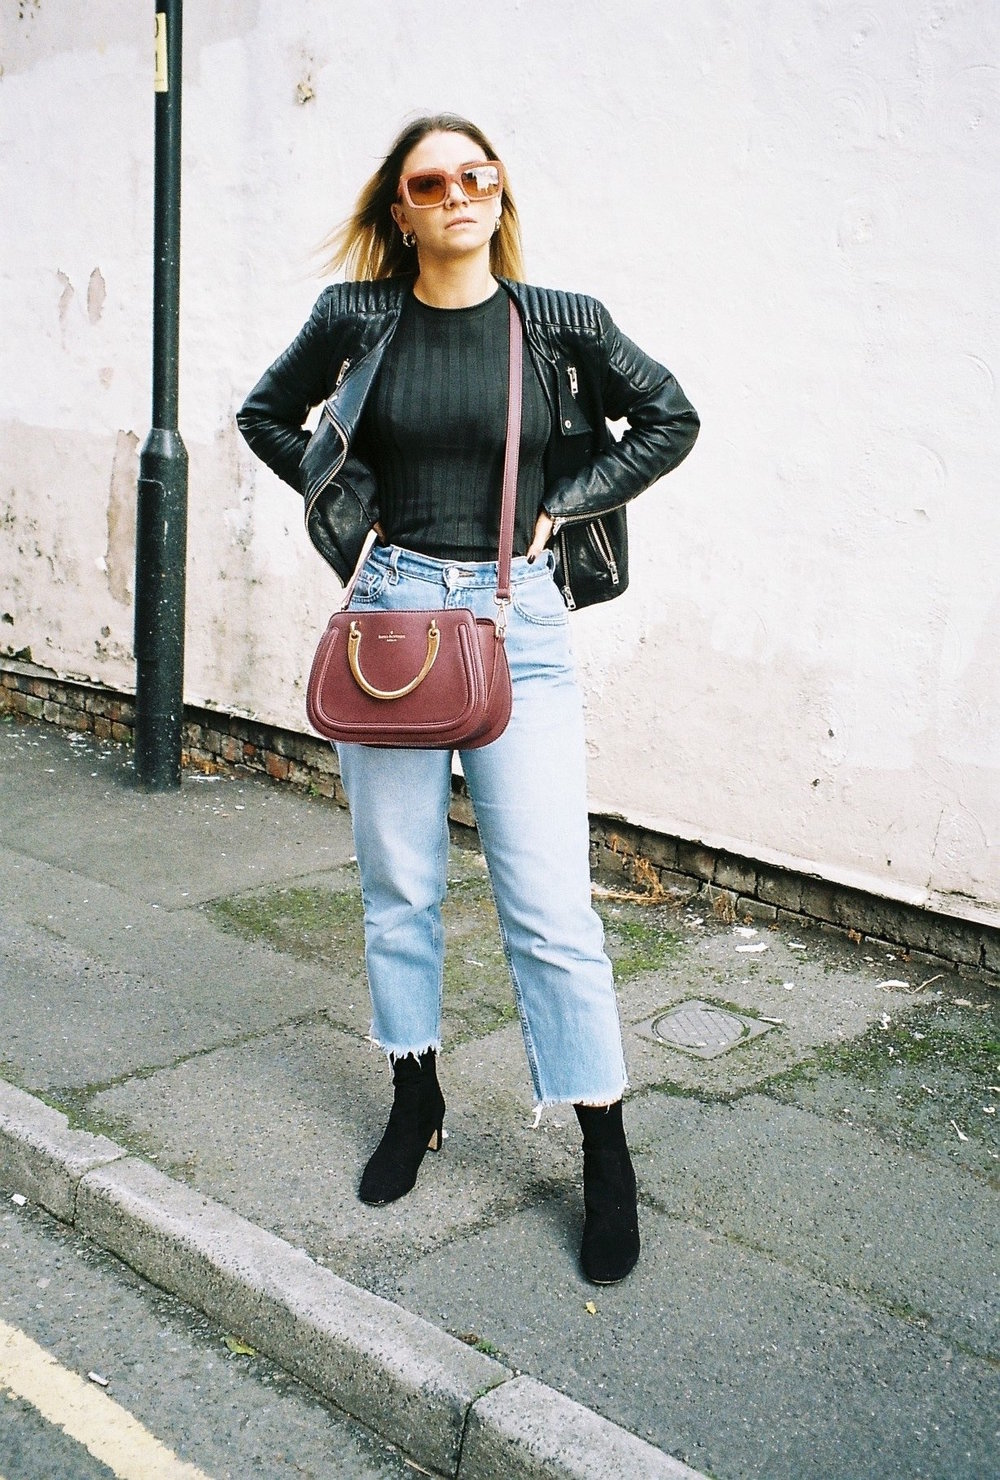 long sleeve topshop, northern magpie, joey taylor, vintage levi jeans 6